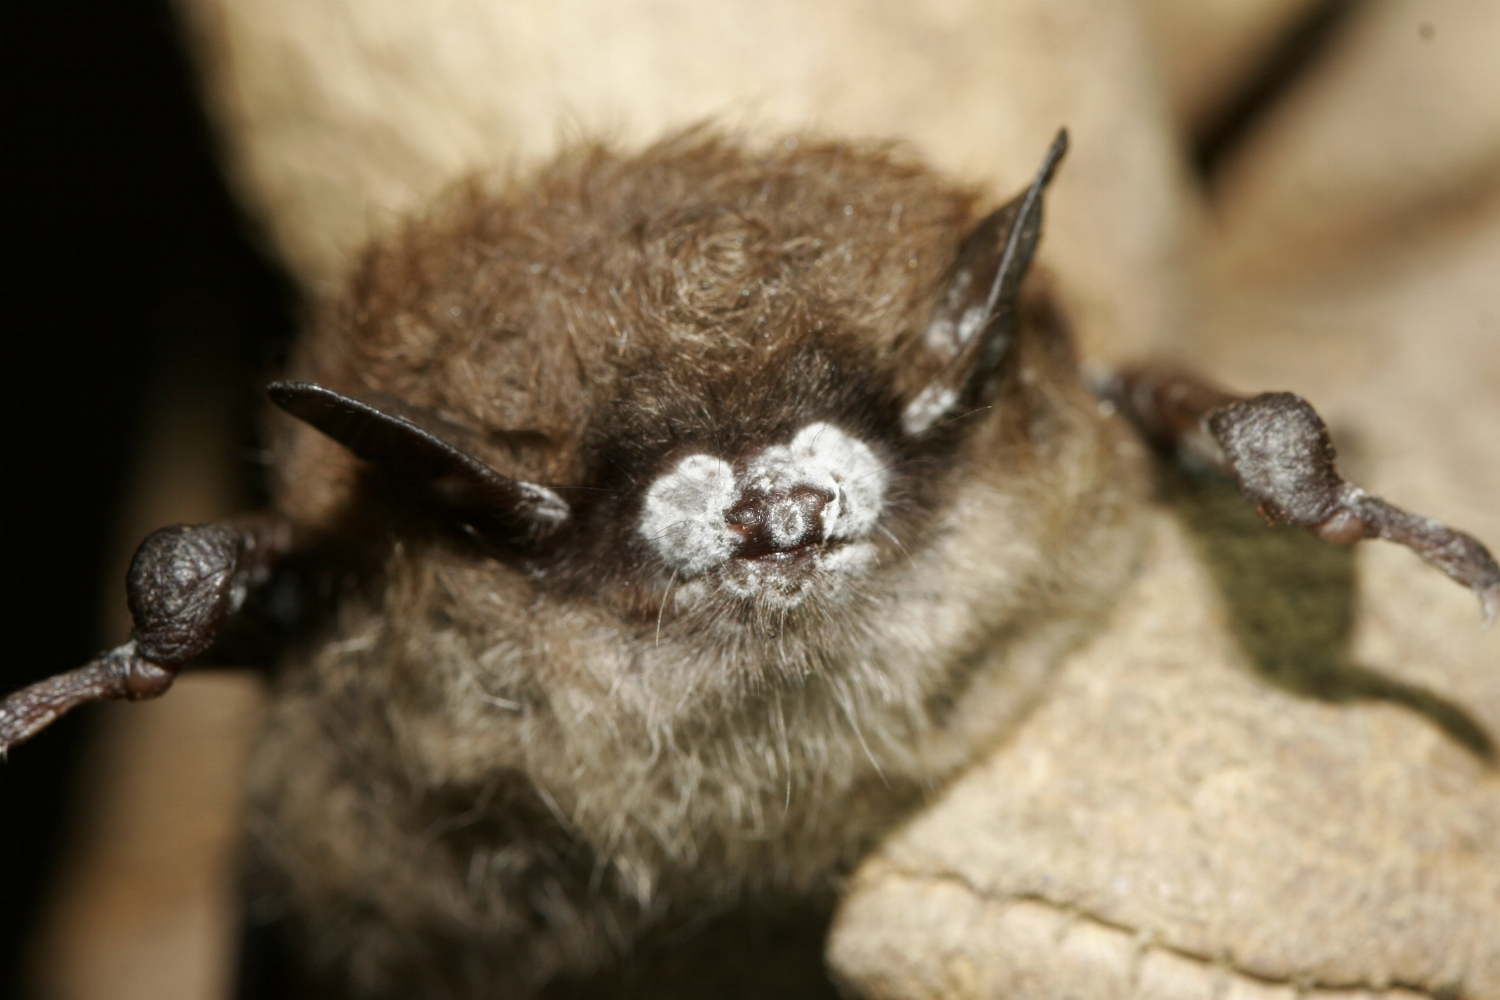 Bat infected with White Nose Syndrome